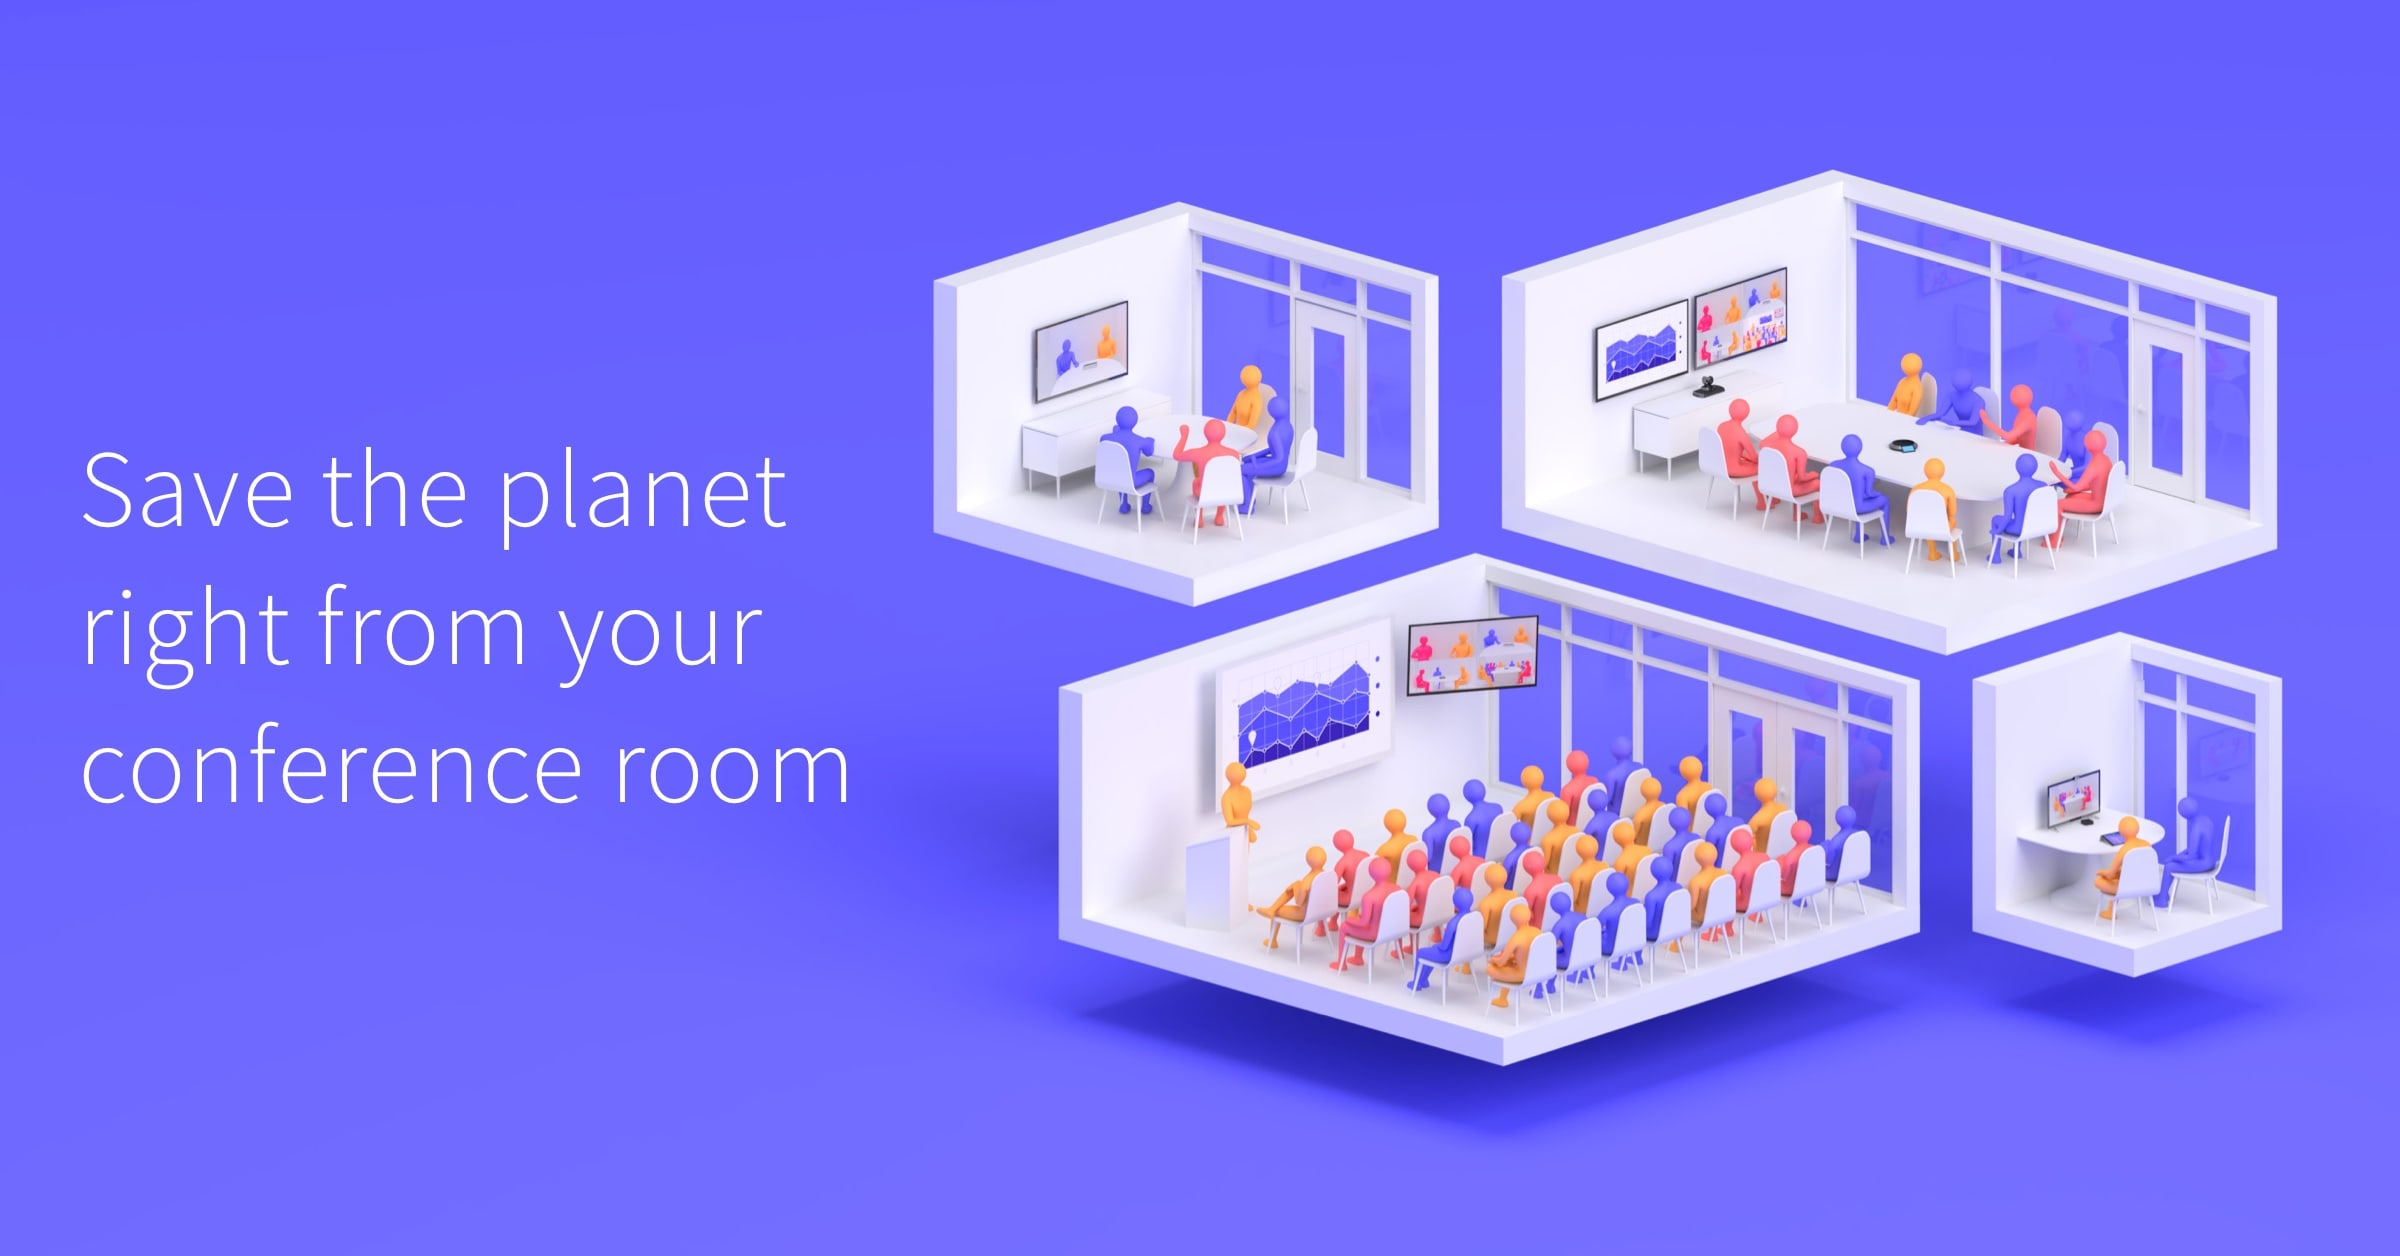 Collaborate with coworkers and meet with clients without the damaging environmental effects of travel. Learn how you can go green with video conferencing.